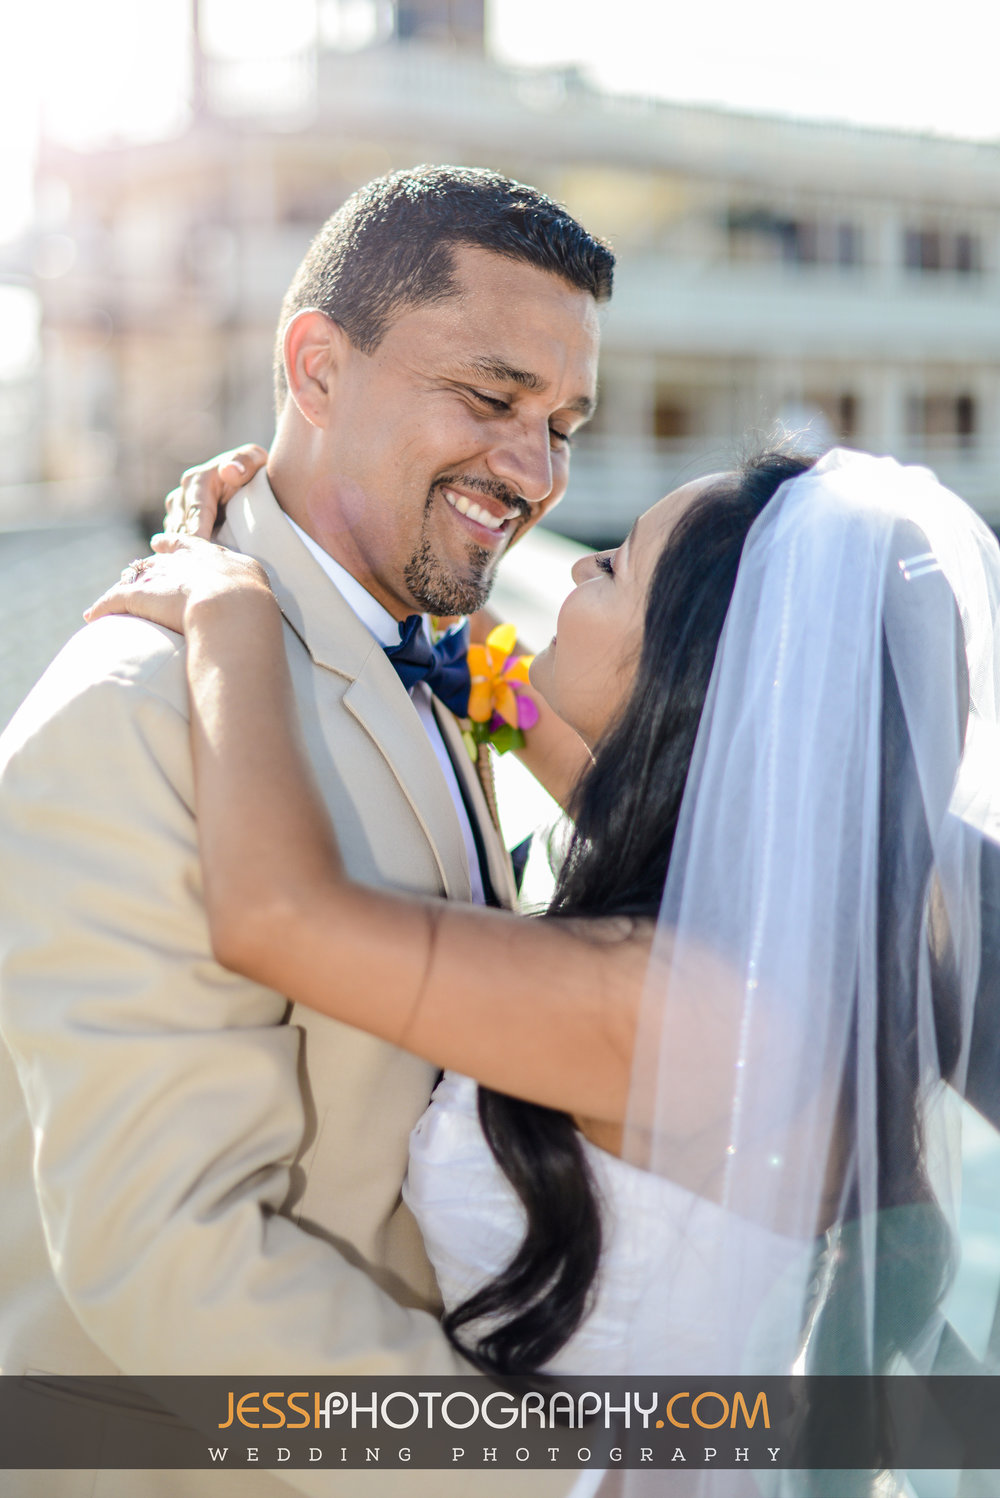 Best_Wedding_Photography_San_Diego_CA